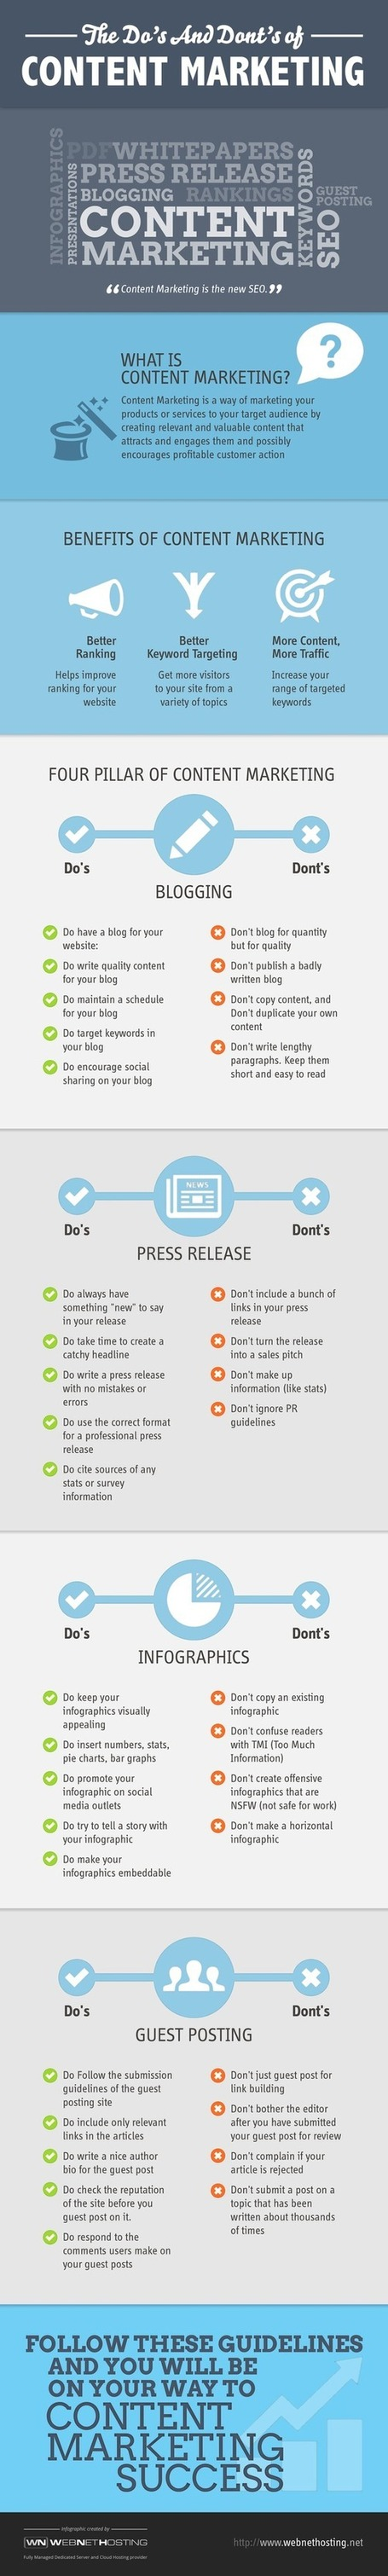 The Do's and Dont's of Content Marketing - Infographic | Webmarketing - Referencement SEO - SEA - SMO | Scoop.it